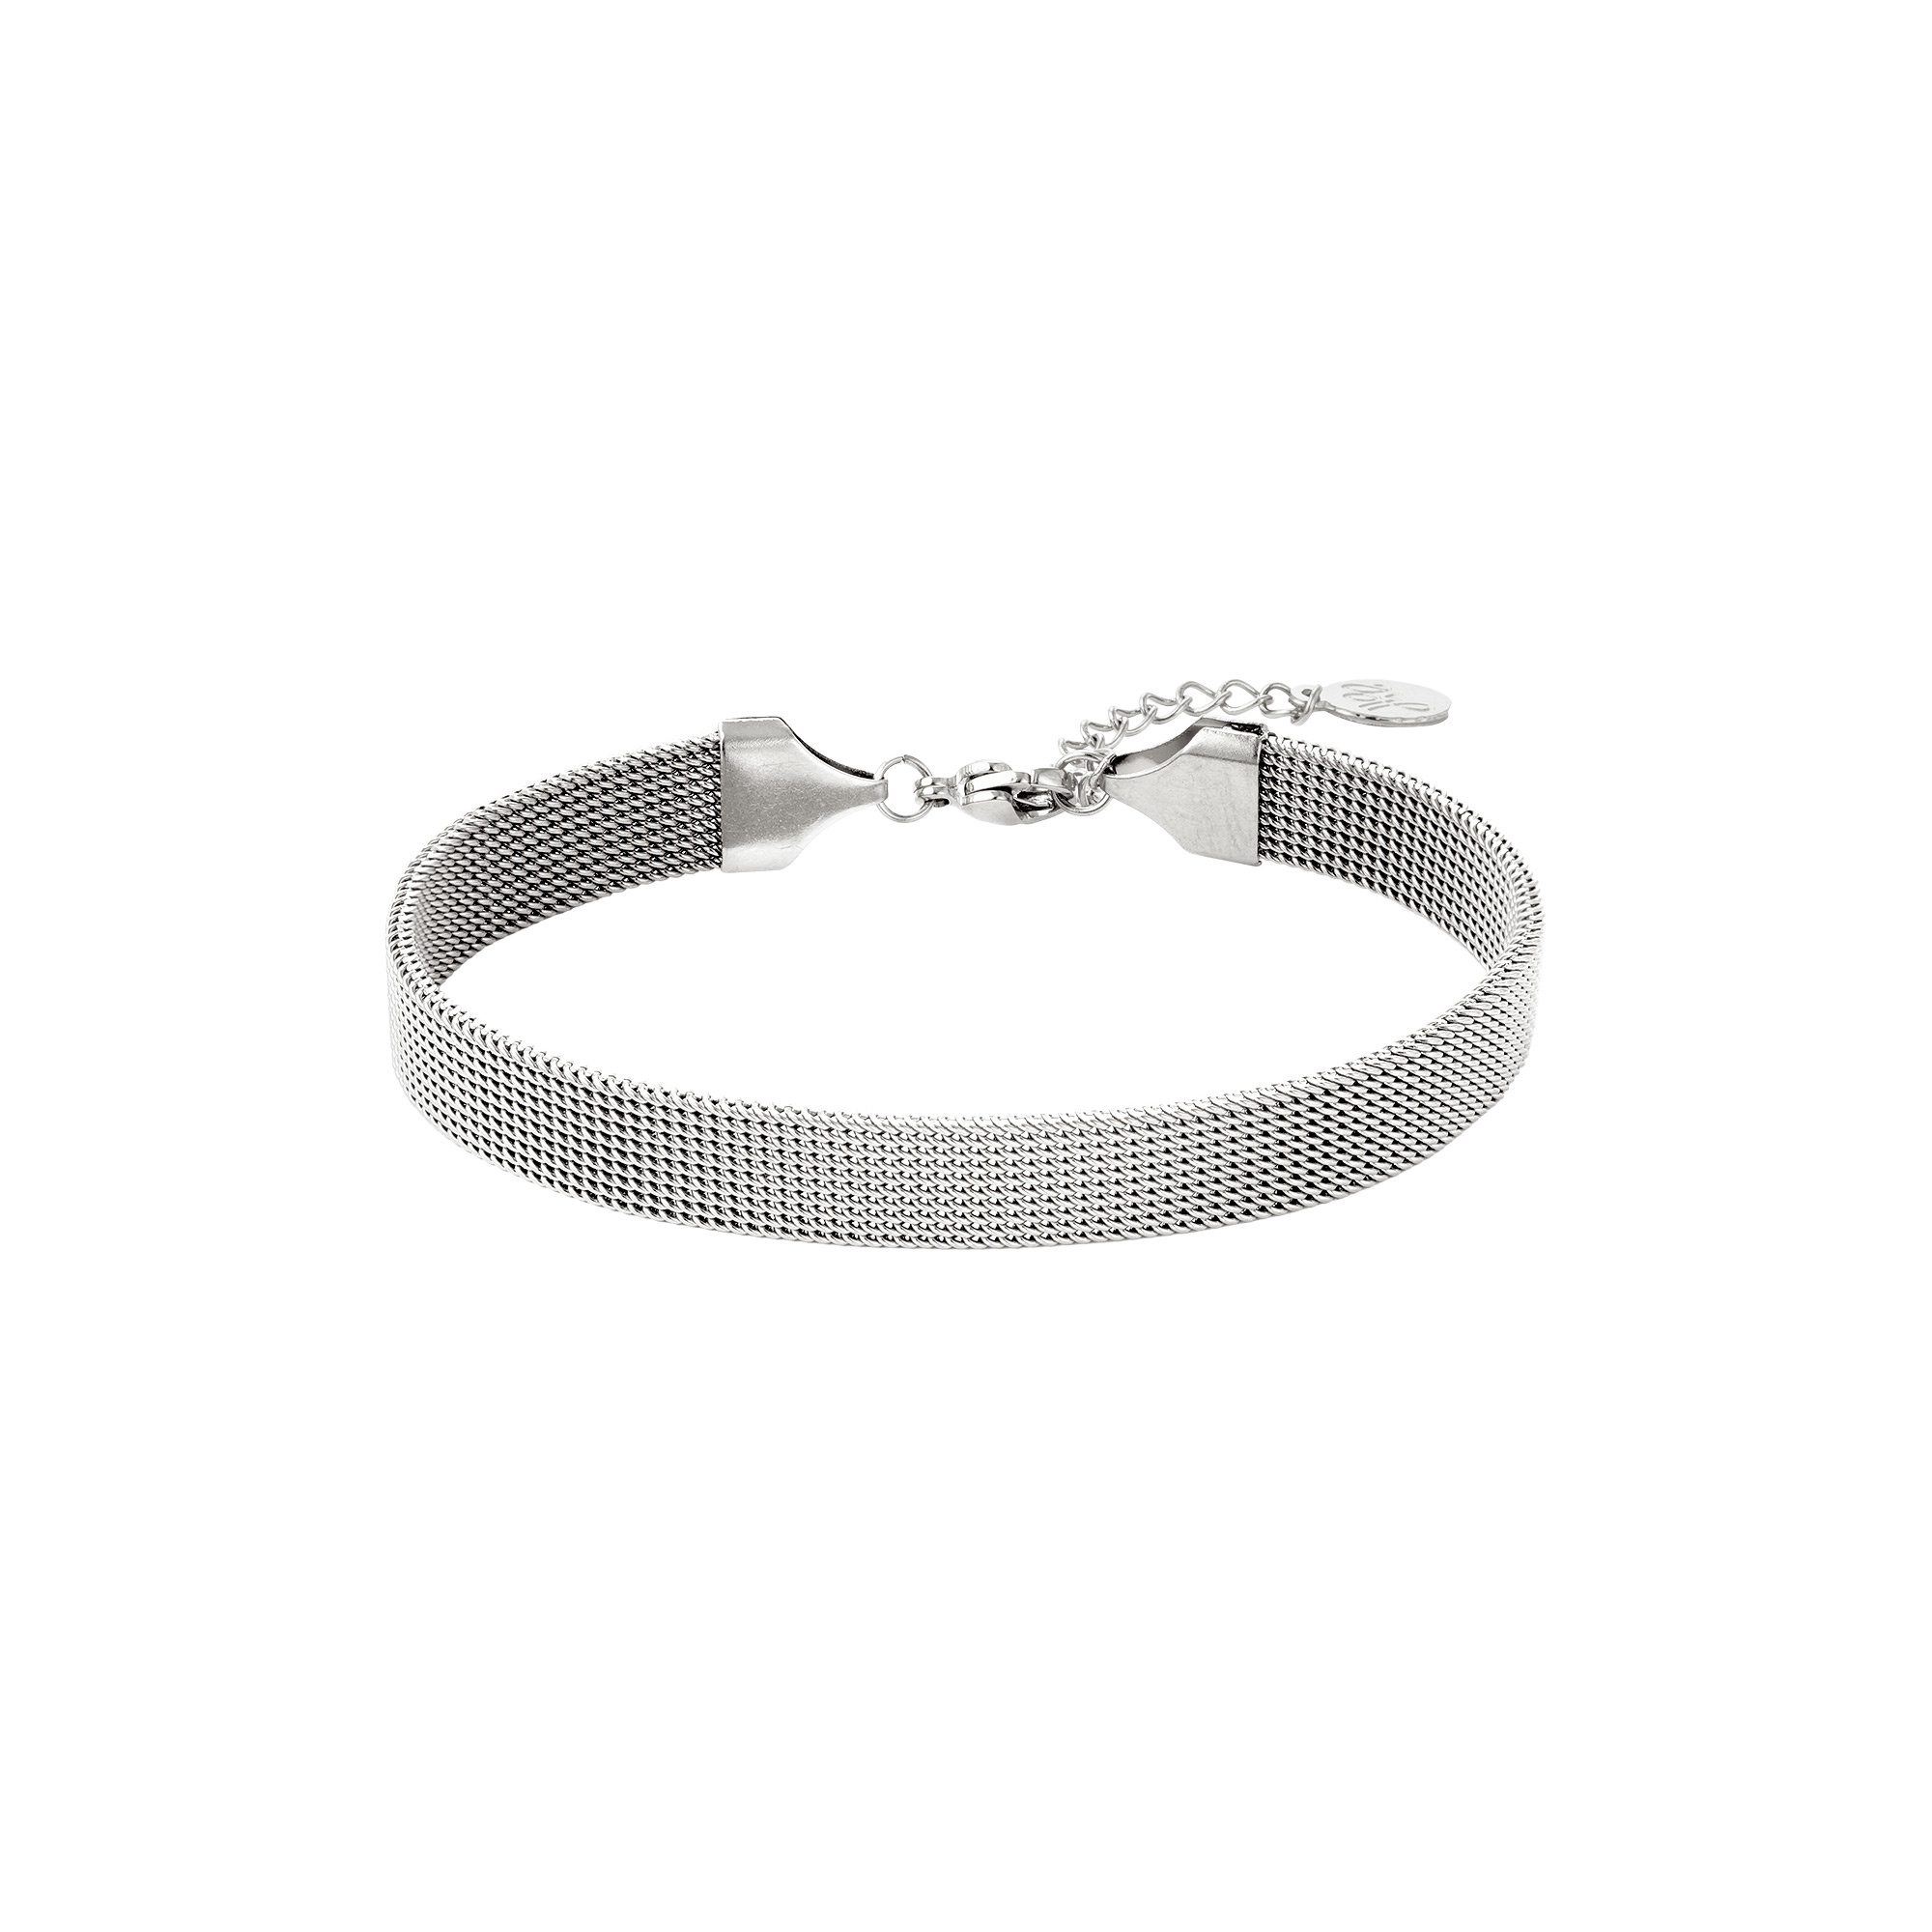 By Moise ARMBAND STEEL ZILVER